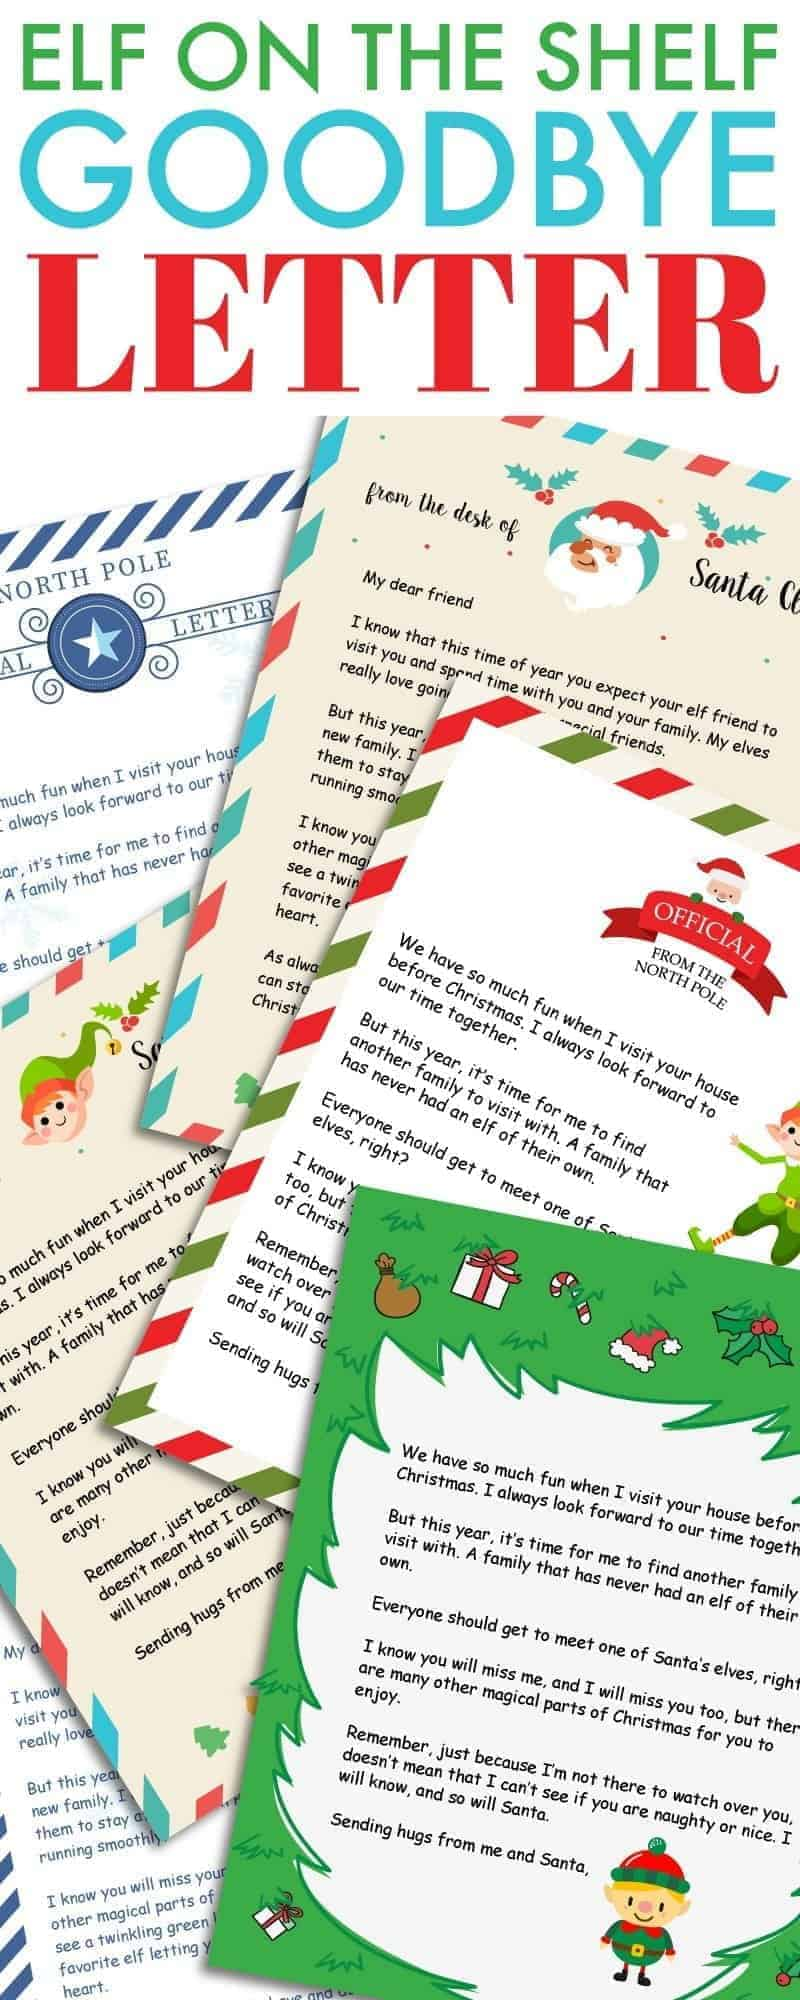 Elf on the Shelf Goodbye Letter Free Printable 730 Sage Street